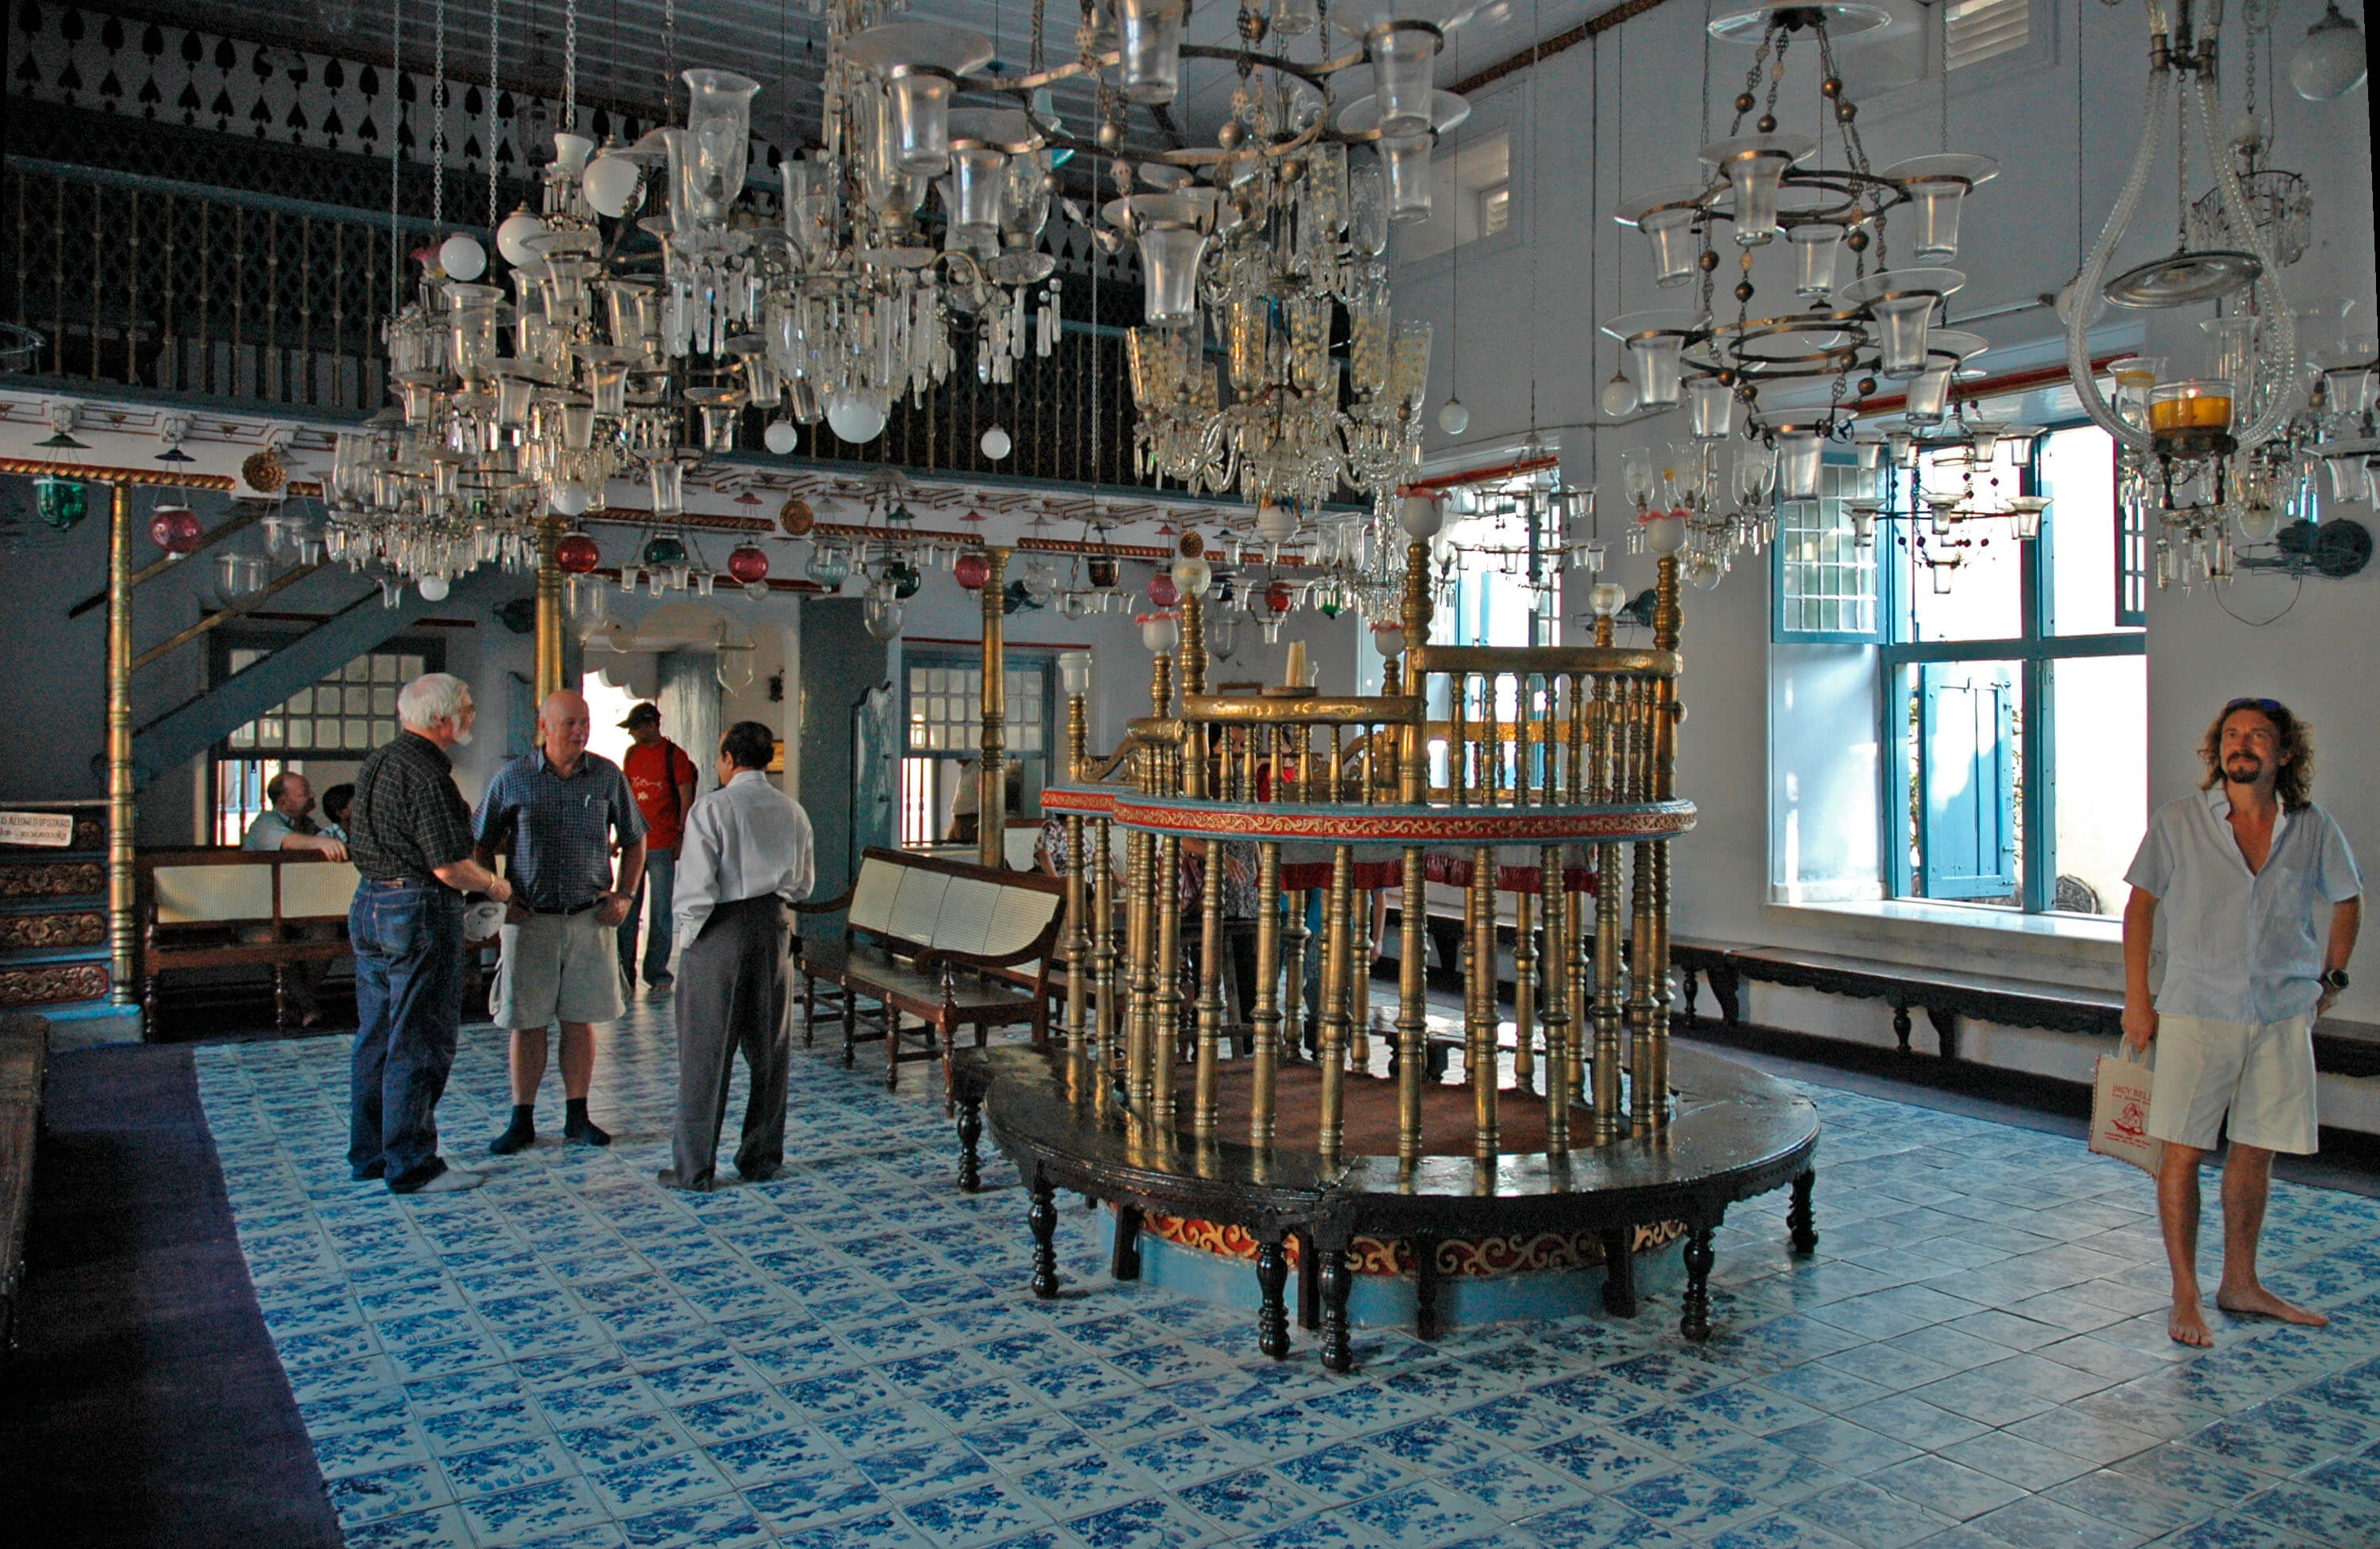 Jewish Synagogue filled with artifacts